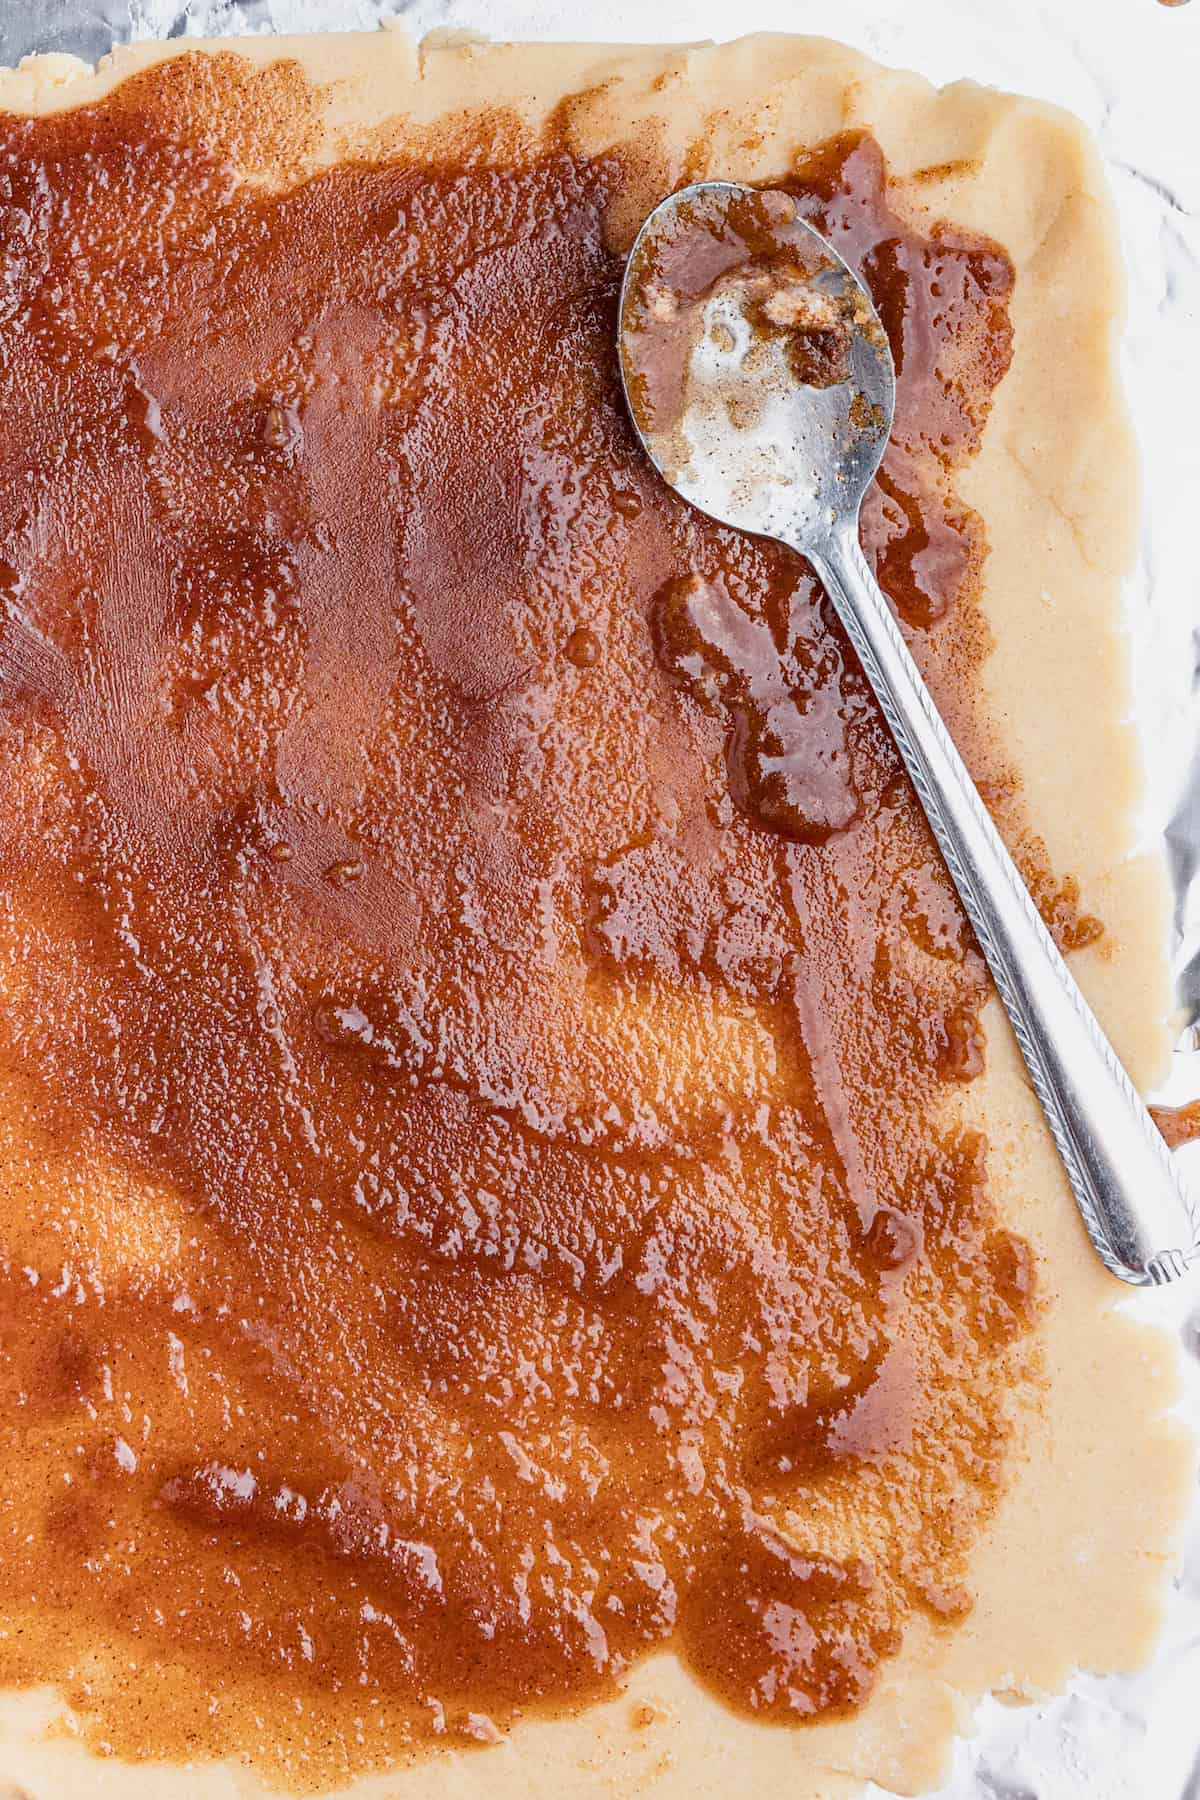 Flattened Sugar Cookie Dough with the Cinnamon Roll Filling Spread Over it Evenly